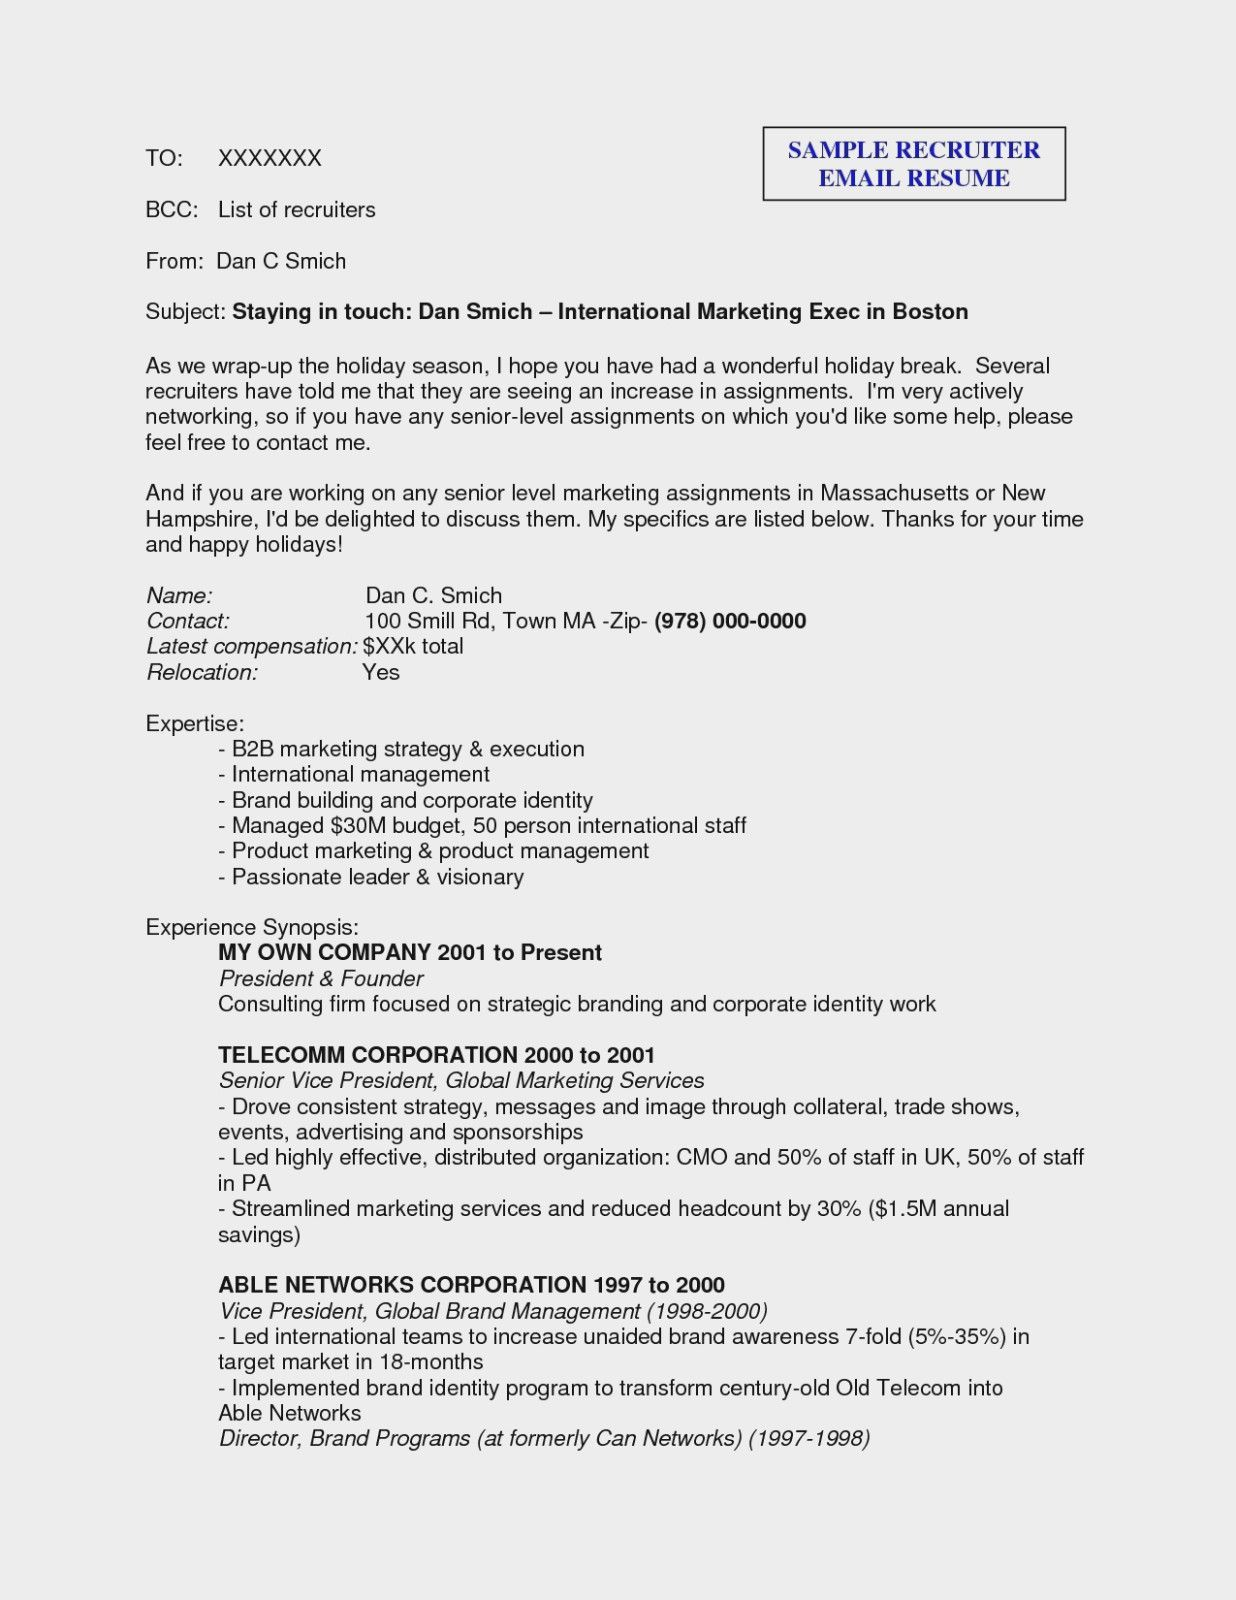 Ehrfurchtig Send Resume To Recruiter 10 Facts You Never Knew About Sending How To Send Resume For Job Resume Ideas Corpor Recruiter Resume Sample Resume Resume